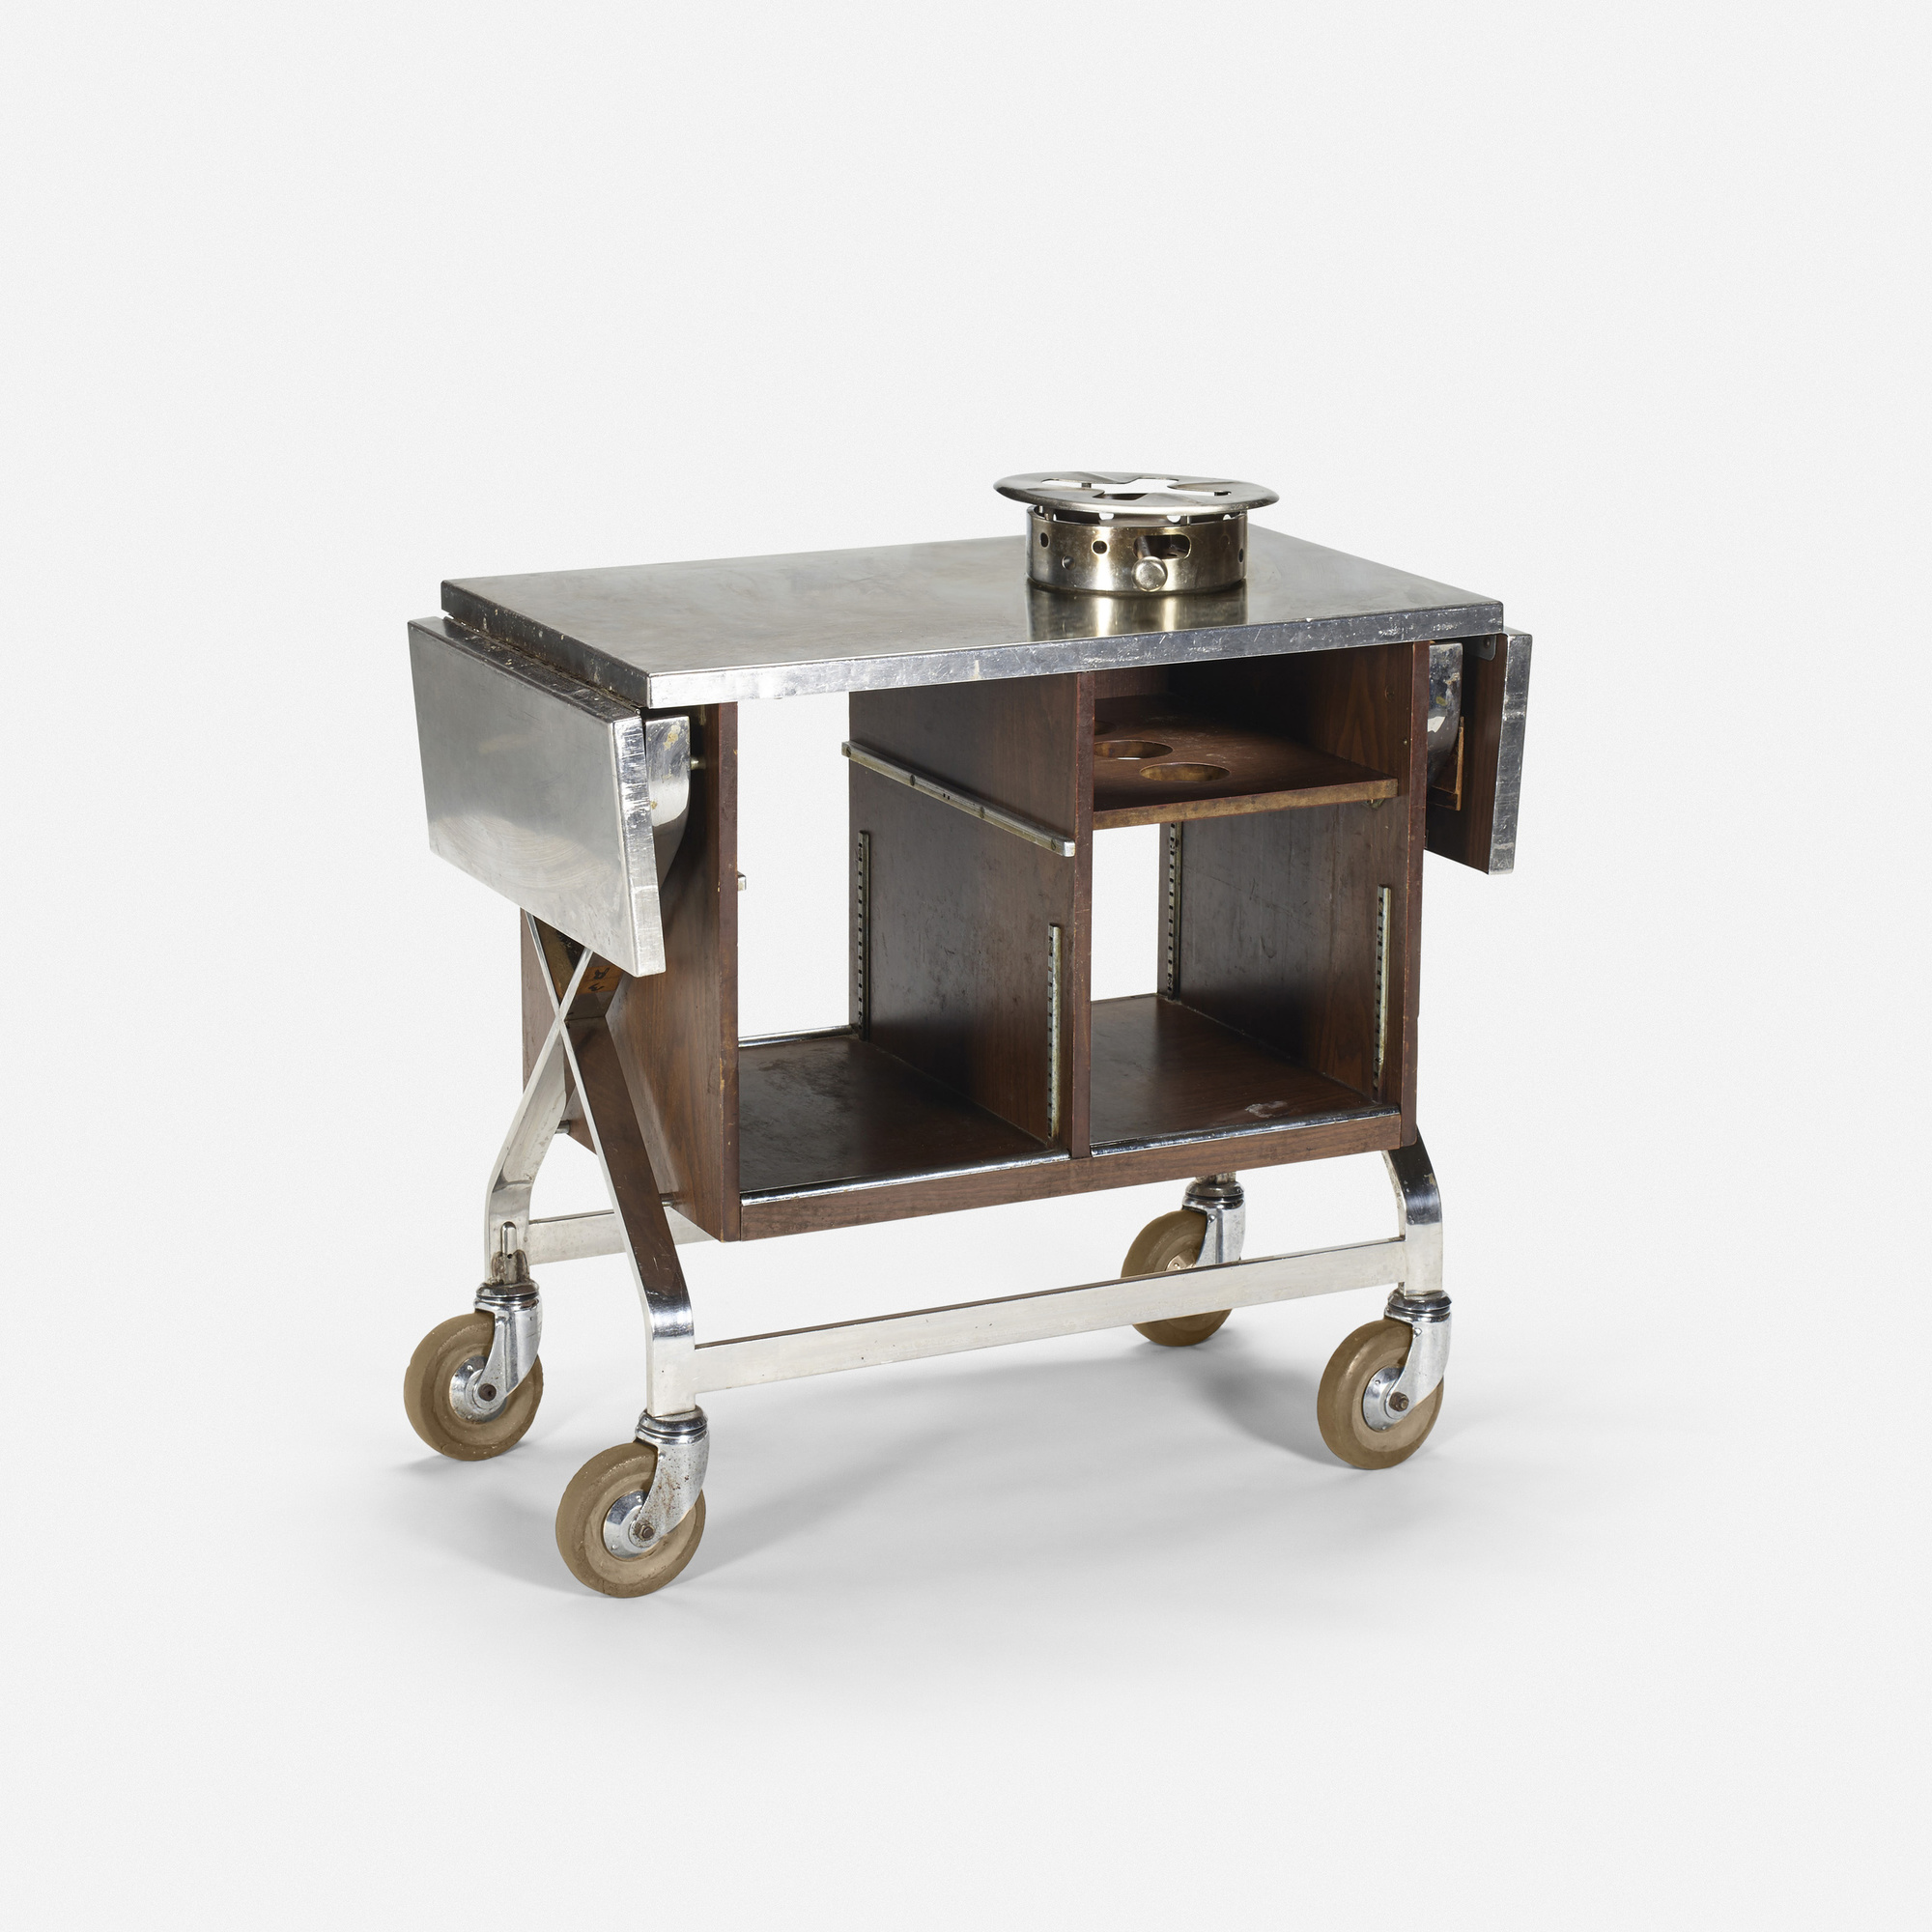 723: Garth and Ada Louise Huxtable / Serving cart from The Four Seasons (1 of 1)